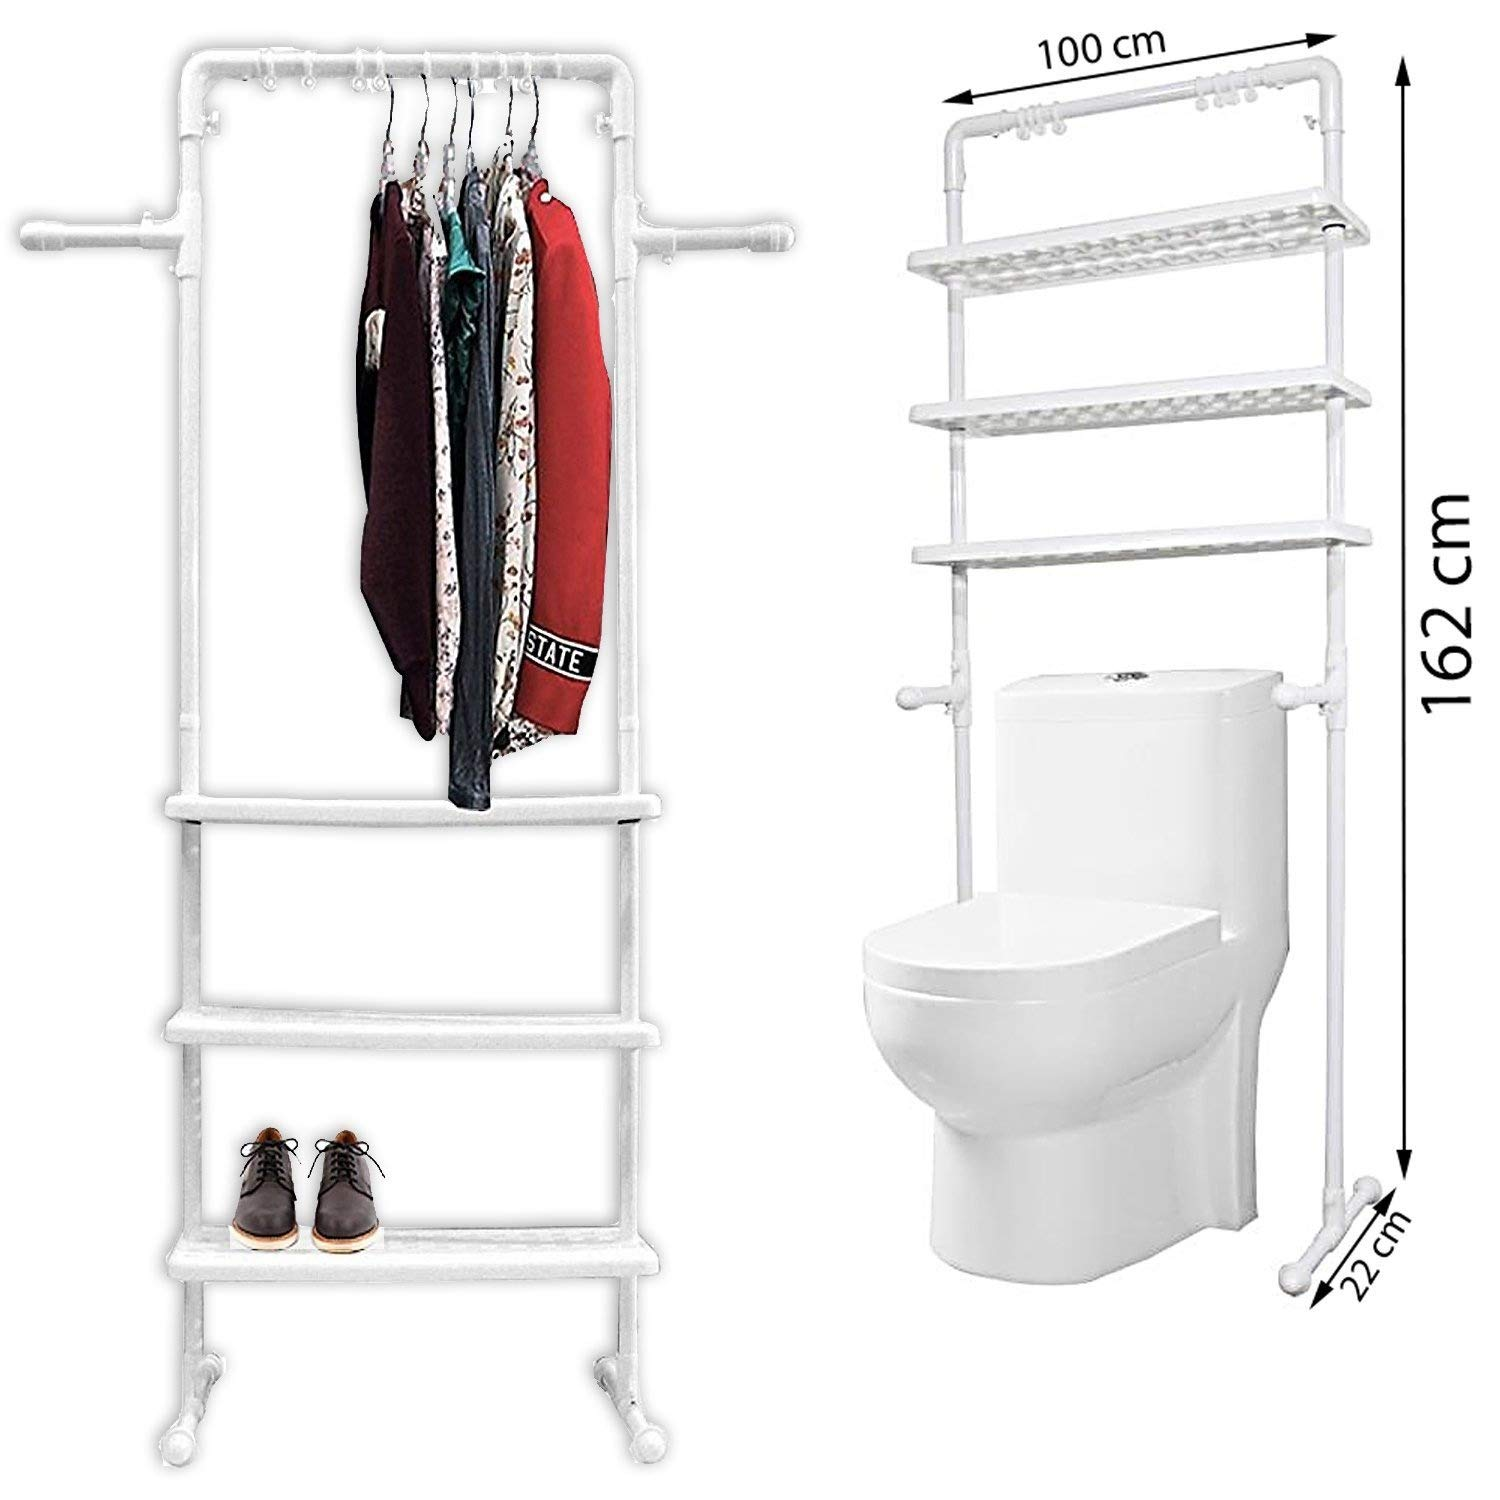 FB FunkyBuys® 3 TIER MULTI-FUNCTION WHITE KITCHEN BATHROOM TELESCOPIC CADDY SELF DRAIN SELF W/ TOWEL RAIL SHAMPOO SOAP CONDITIONER HOLDER HANGERS FB FunkyBuys®